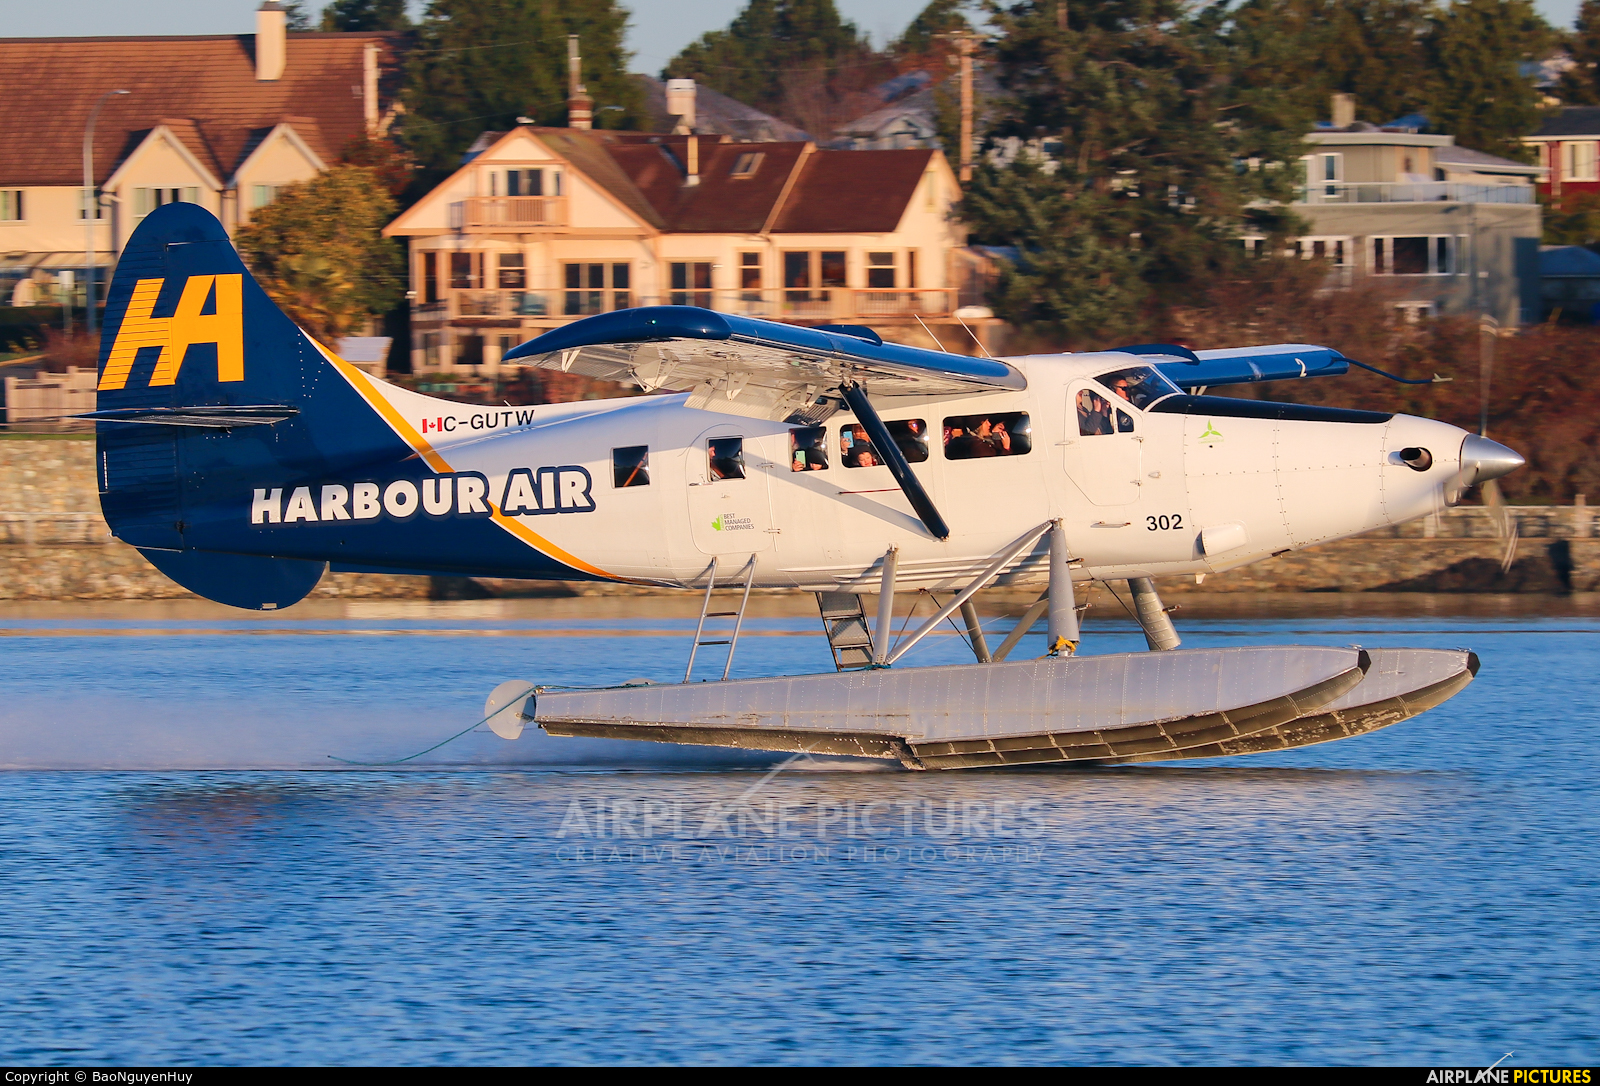 Harbour Air C-GUTW aircraft at Victoria Harbour, BC